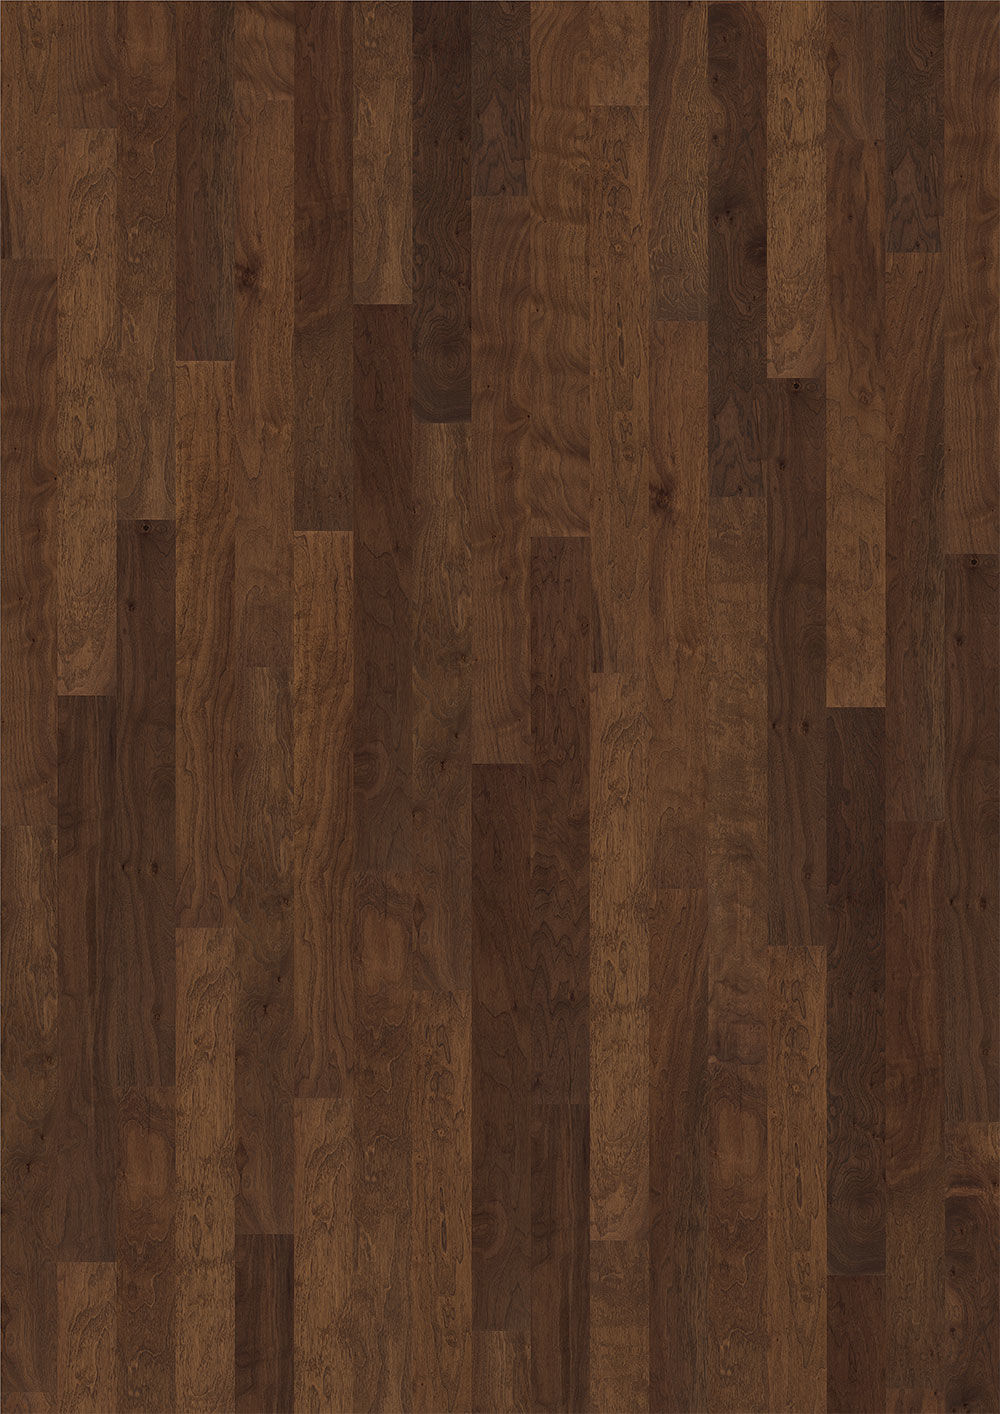 Kahrs Spirit Hardwood Flooring Unity Orchard Walnut